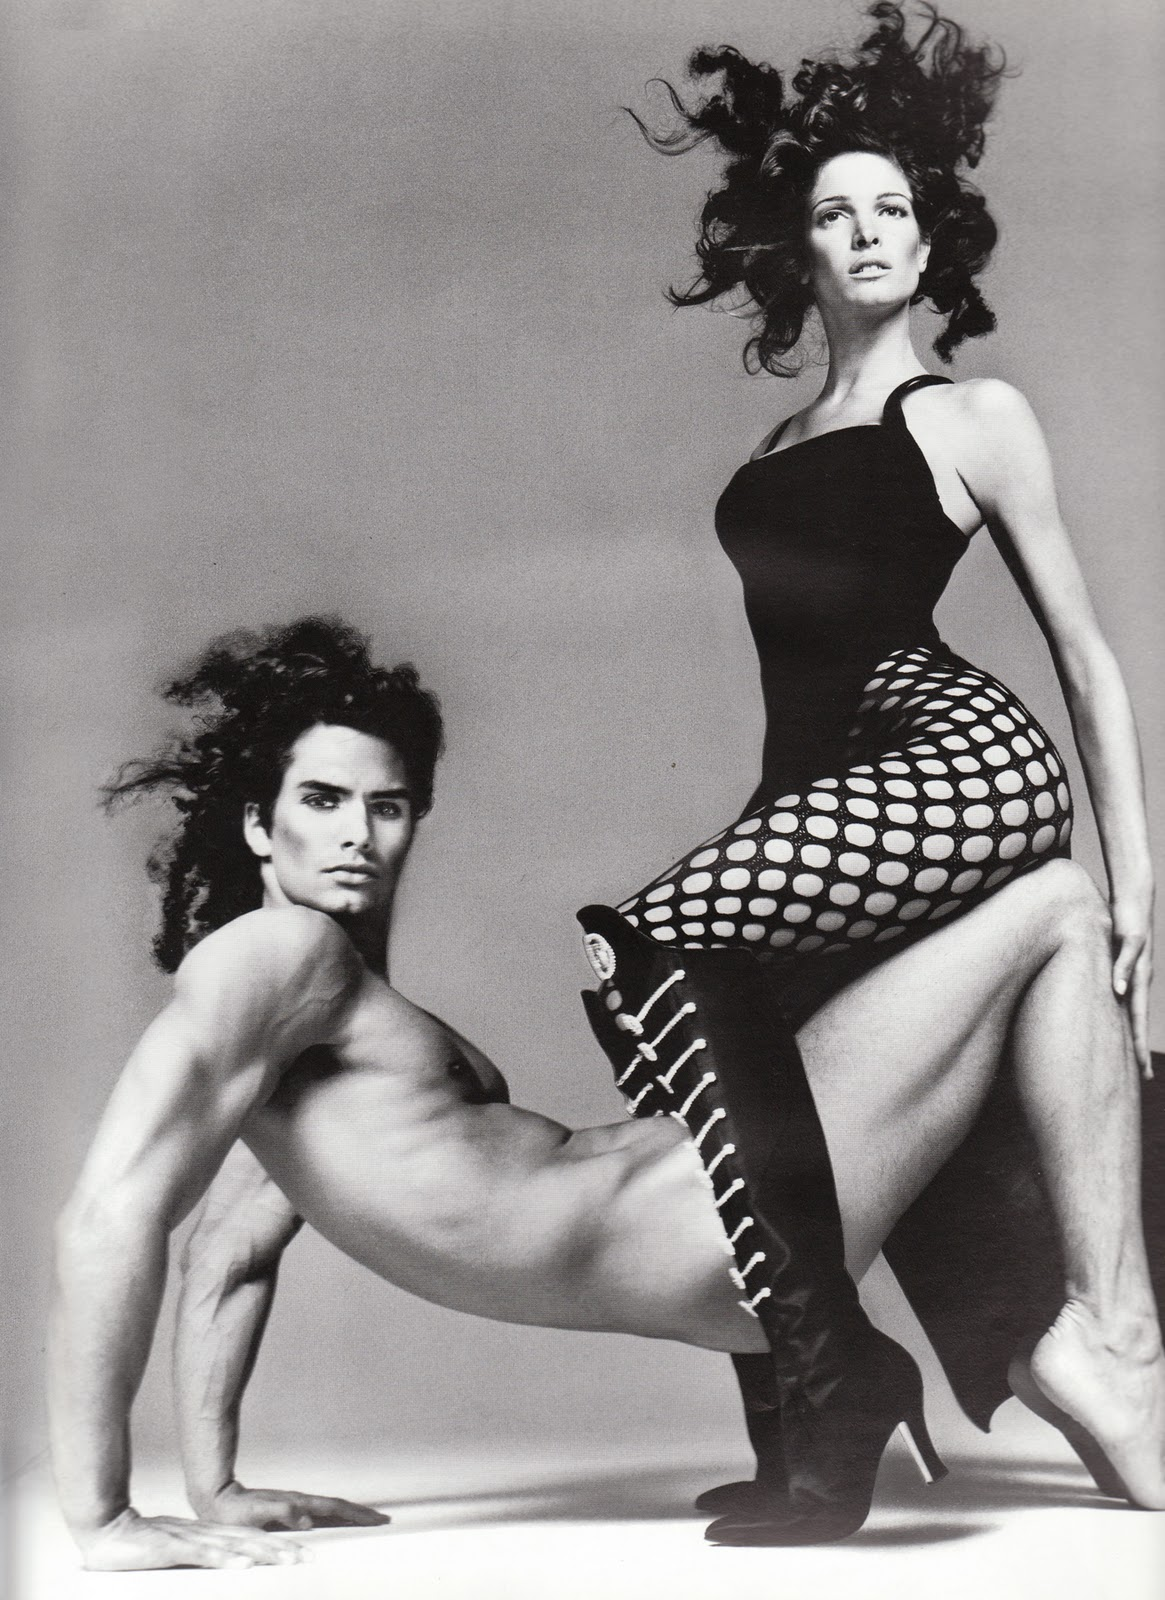 WE__VERSACE-_Stephanie_Seymour_for_Versace_Fall_1993_by_Richard_Avedon._www.imageampilfied.com_Image_Amplified3